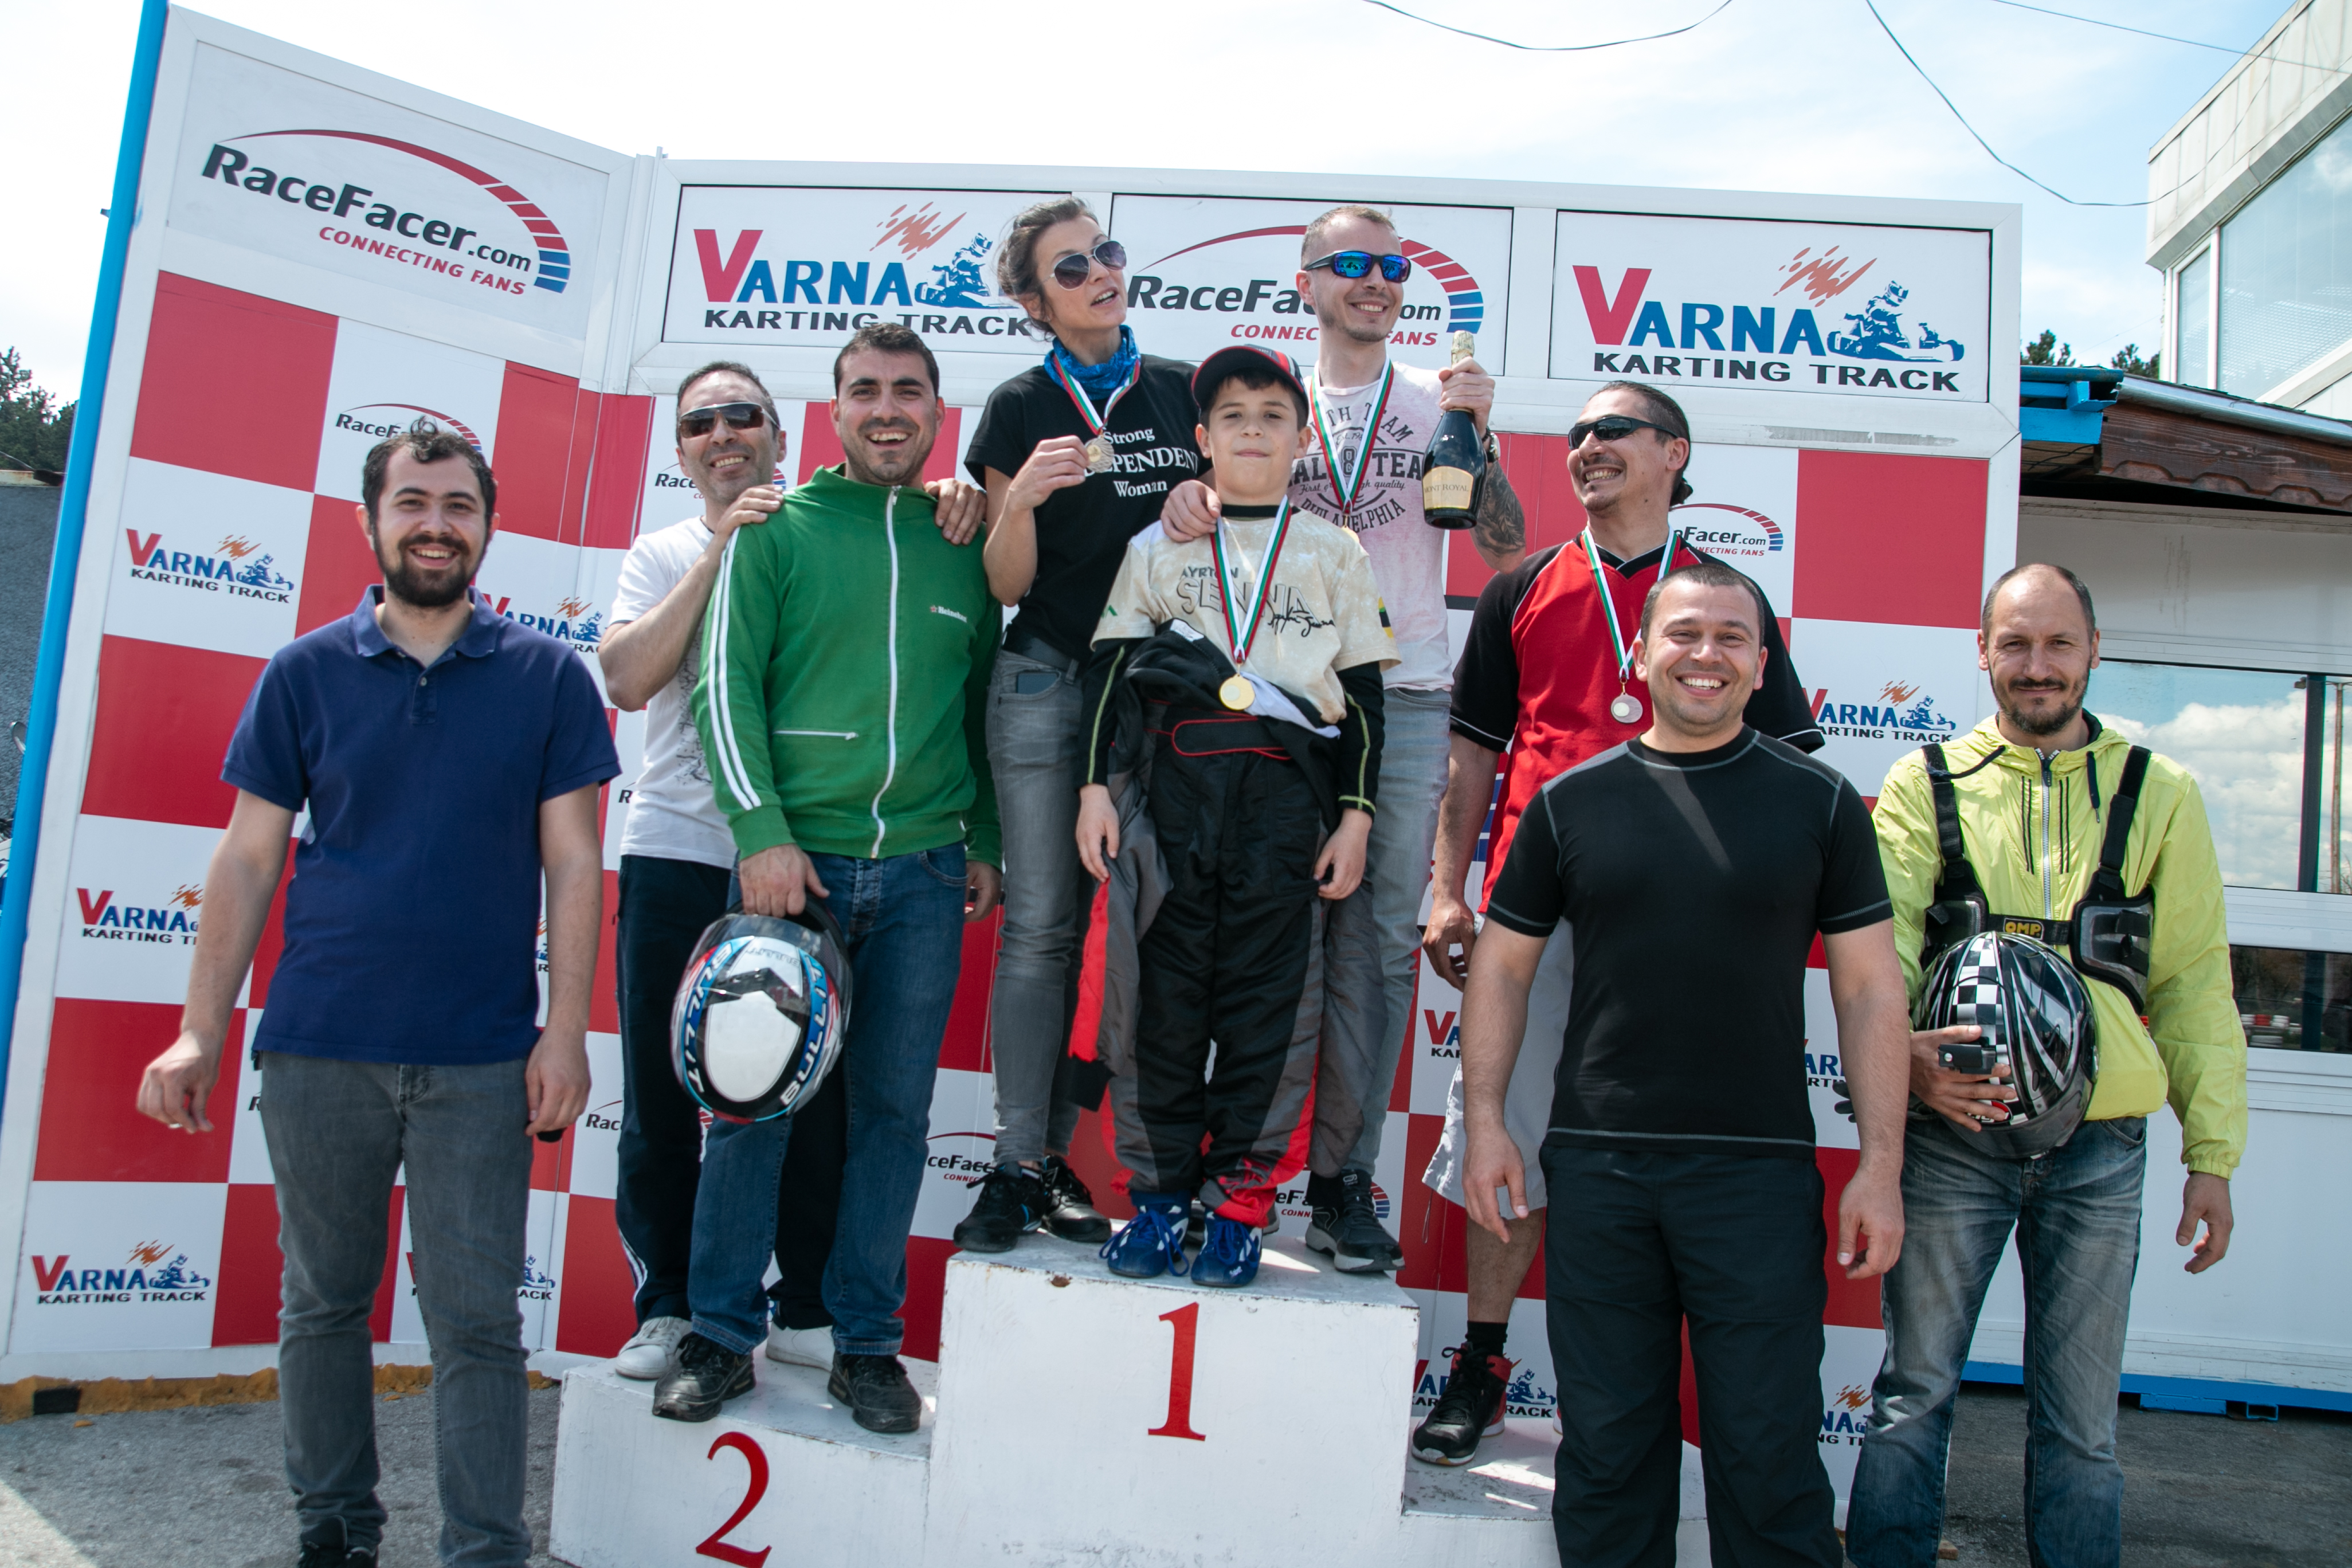 race-karting-senna-varnakarting-winners